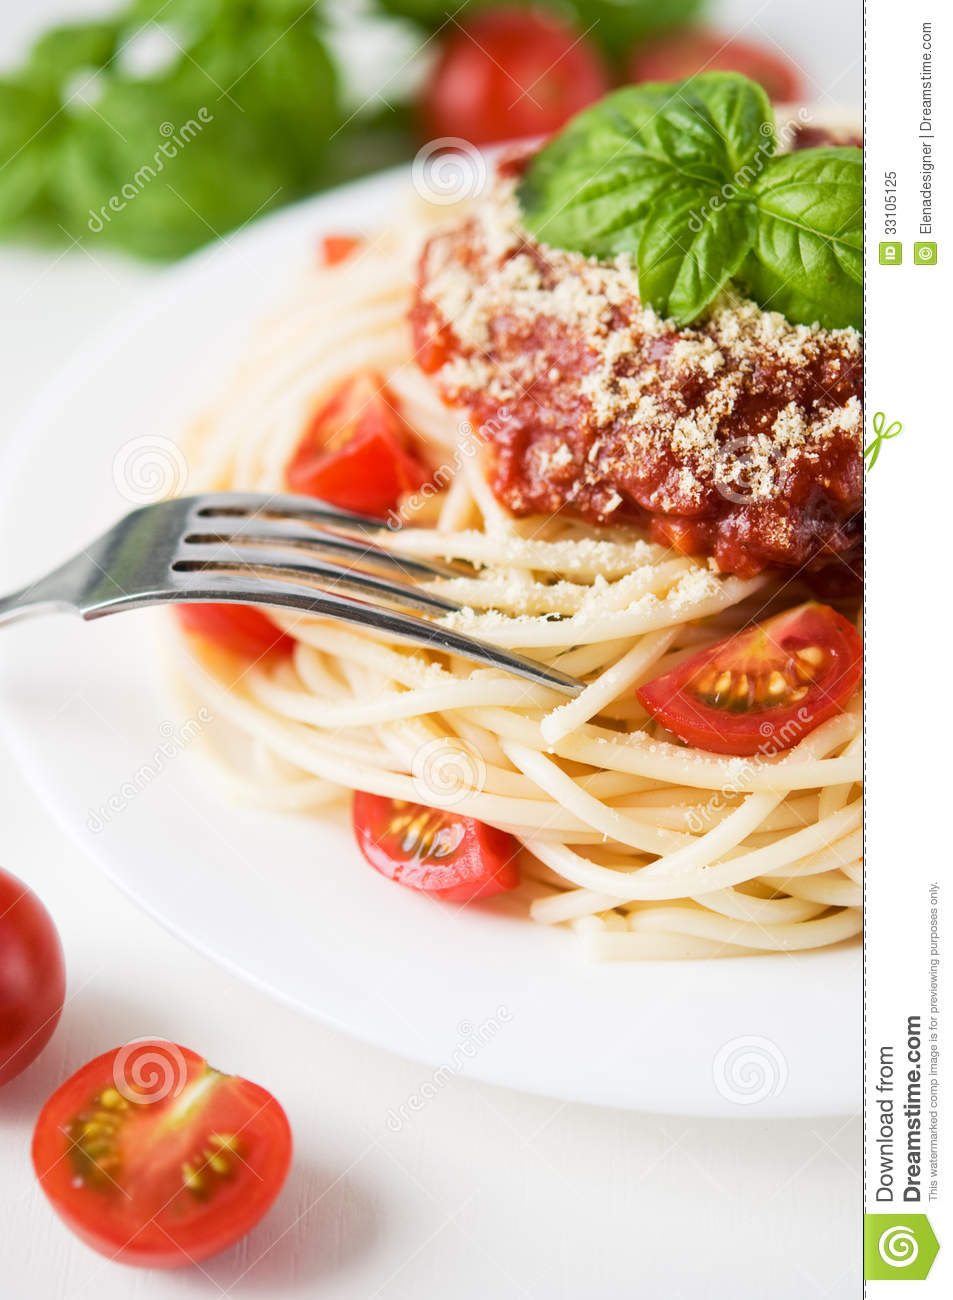 Pasta With Tomato And Cheese Royalty Free Stock Photo ...